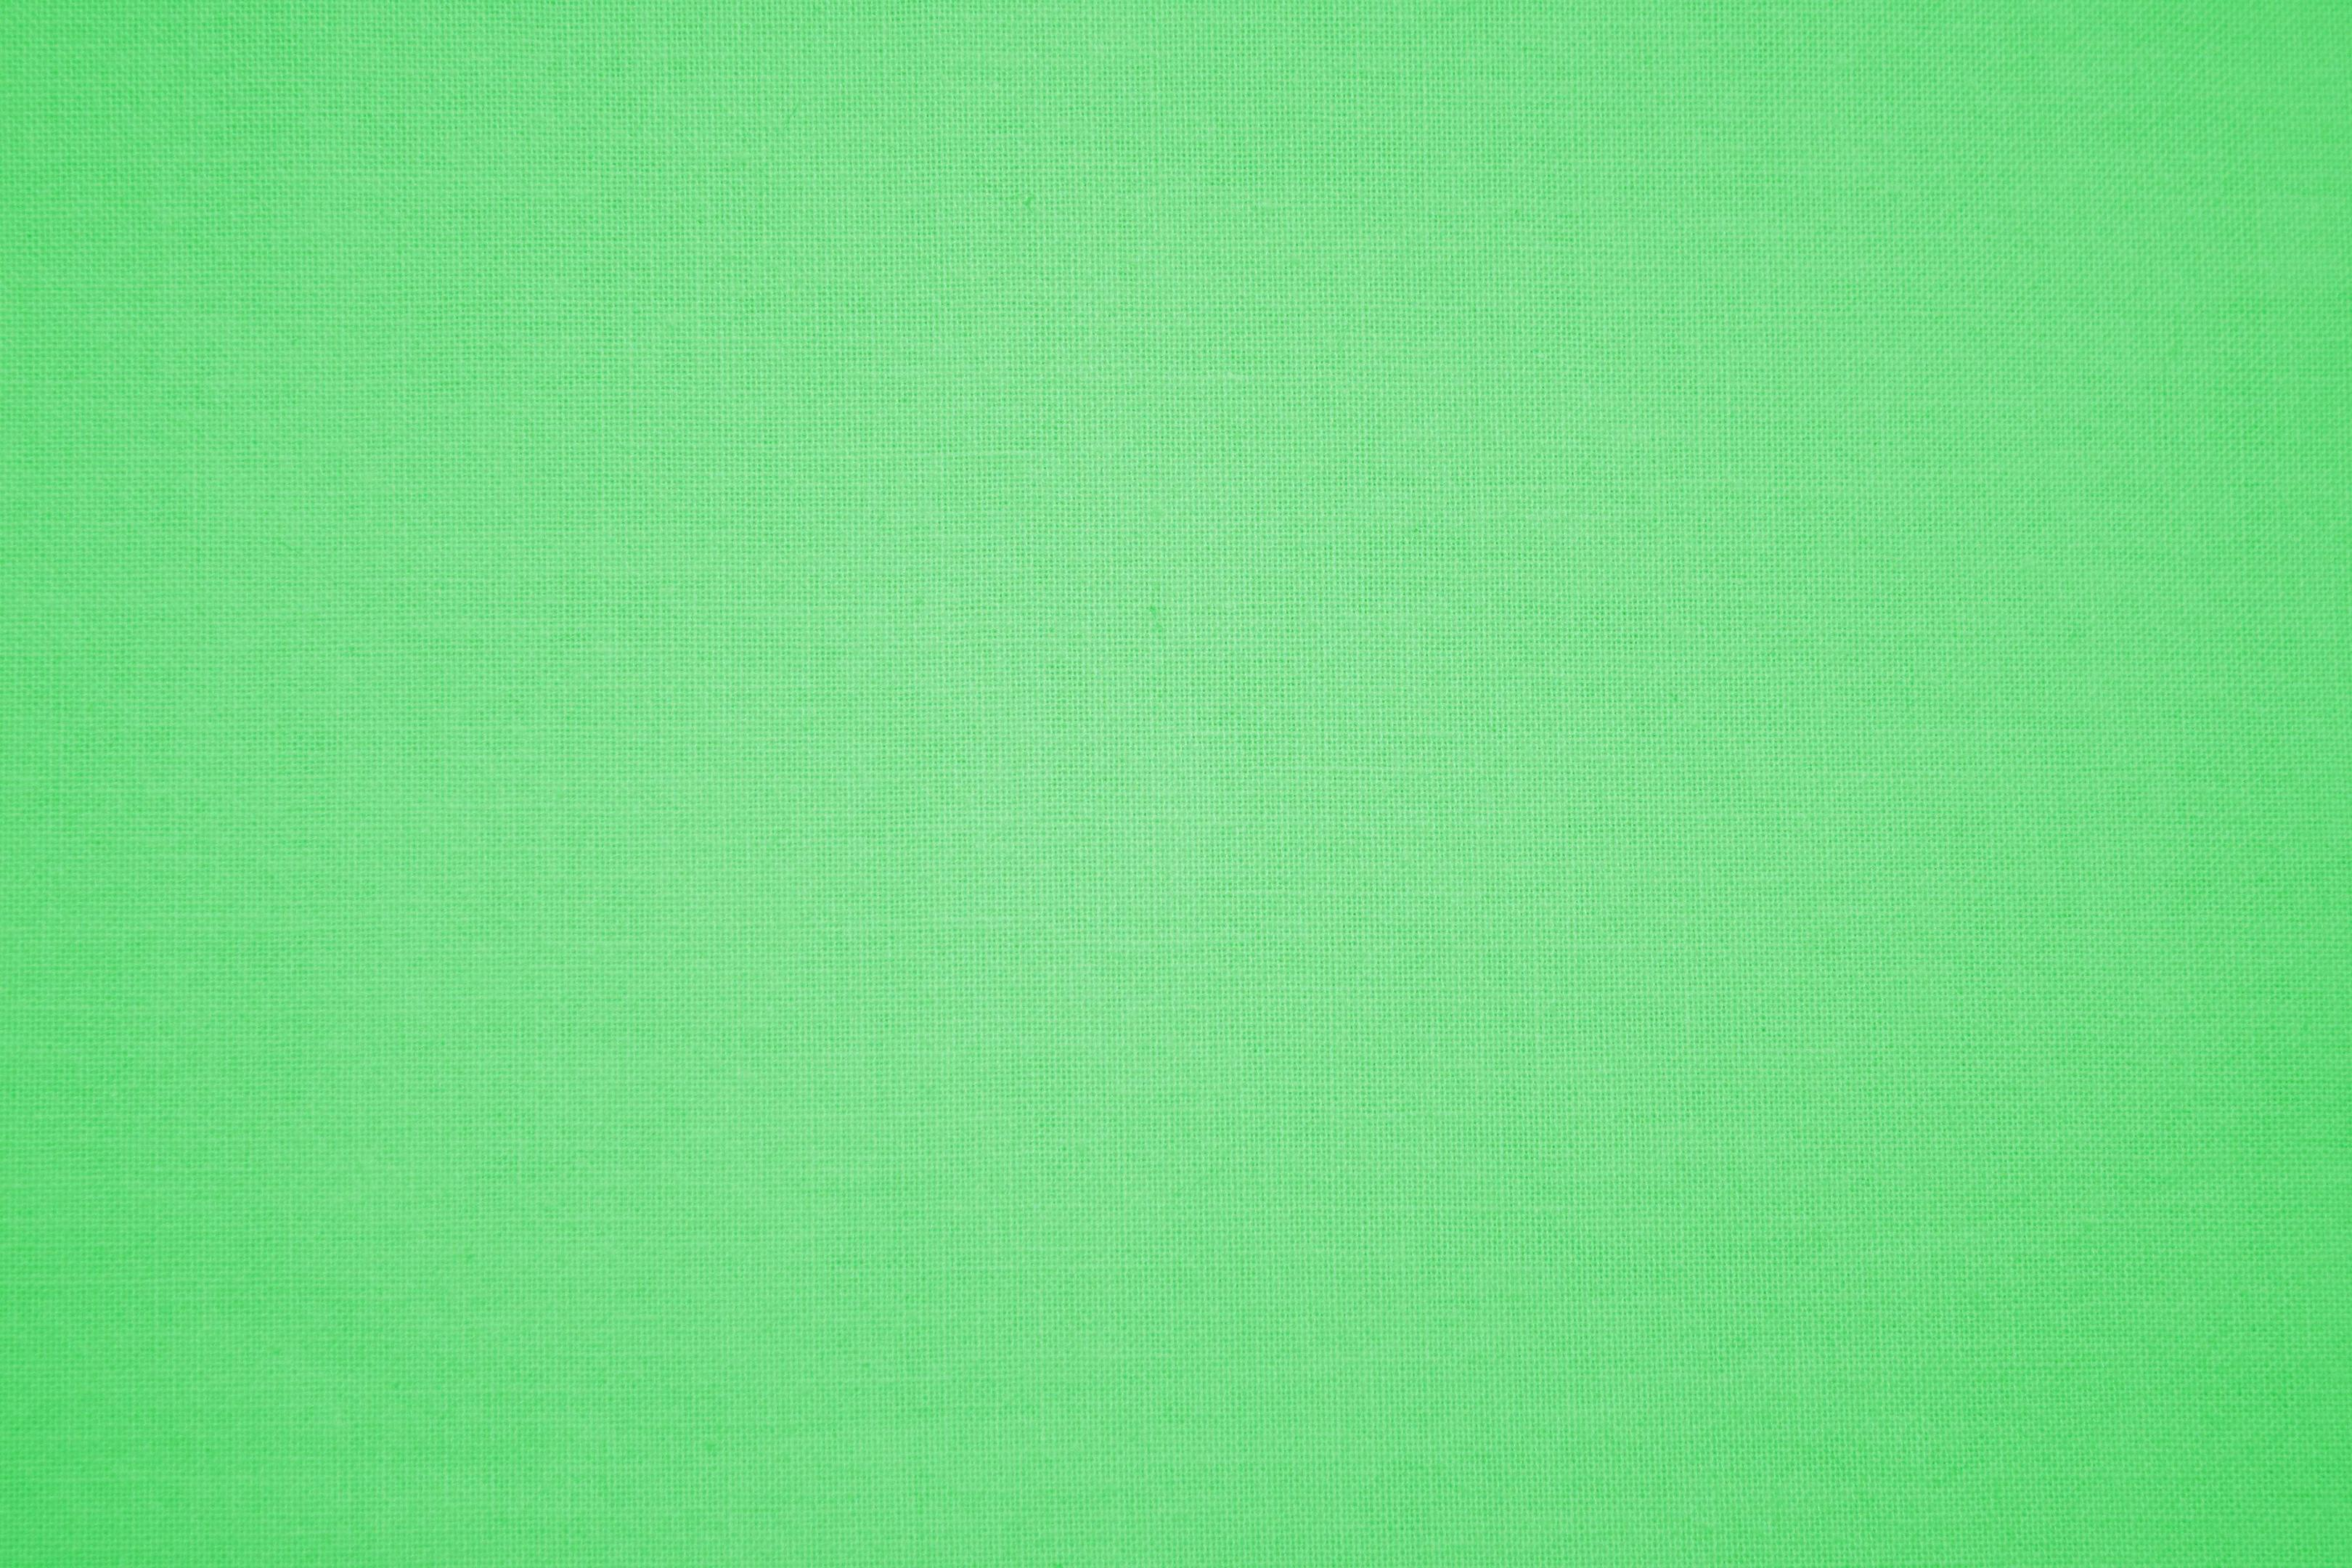 light green color backgrounds - photo #14